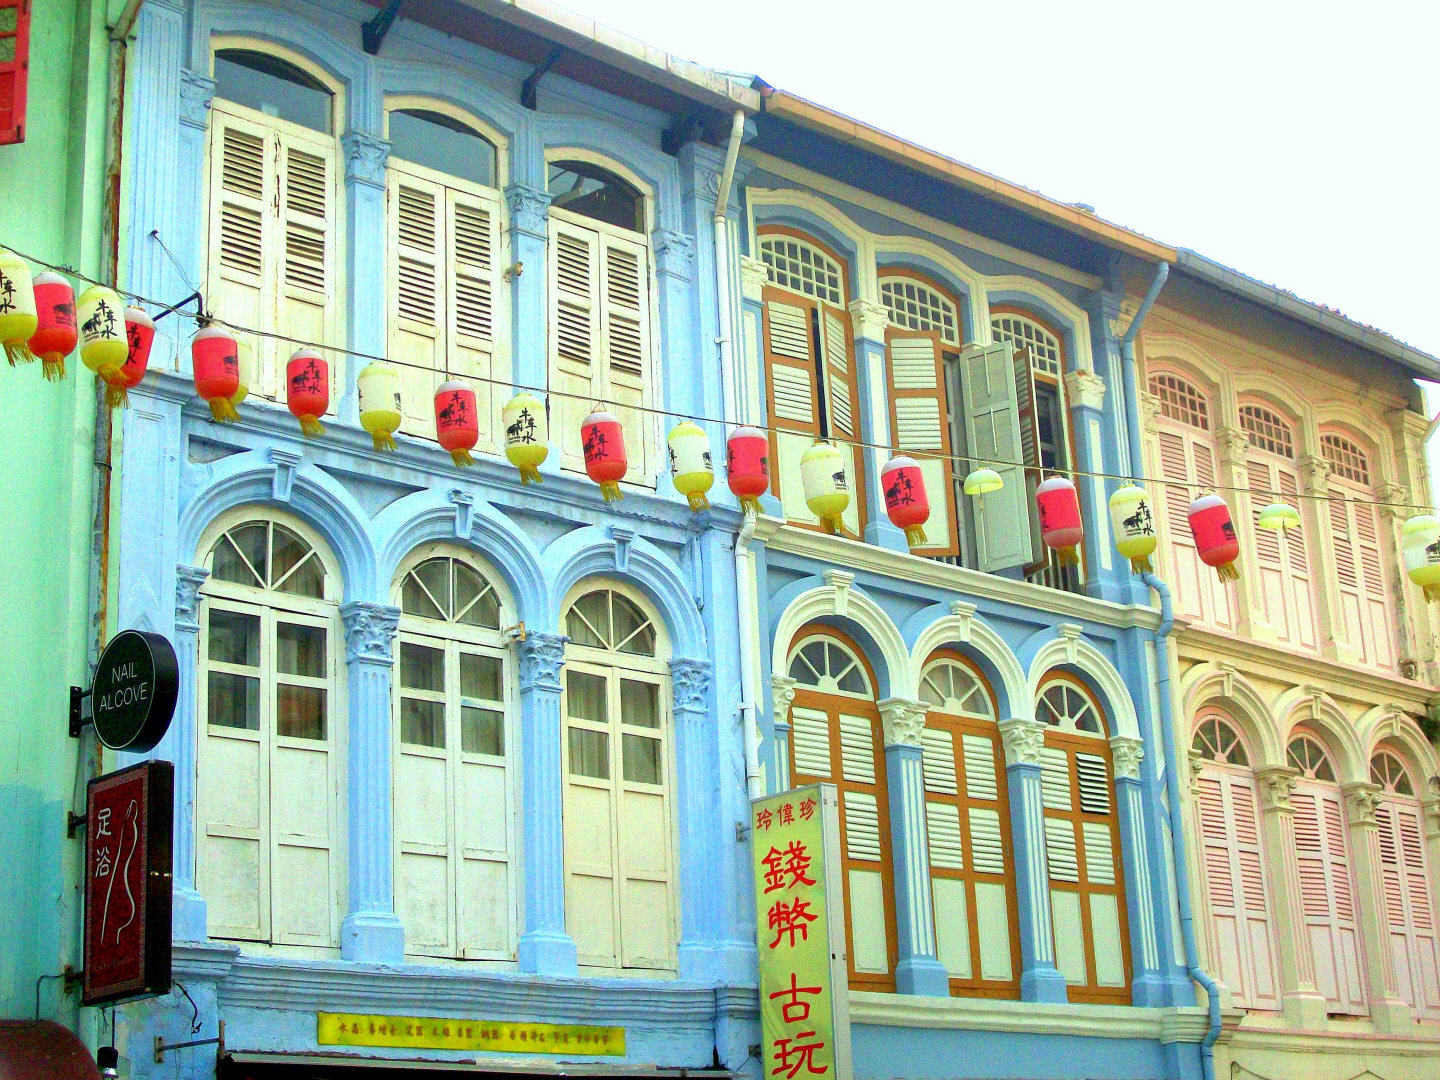 Singapore uses Paint to Lift the Spirits of the People & Bring Joy Without a Lot of Cost